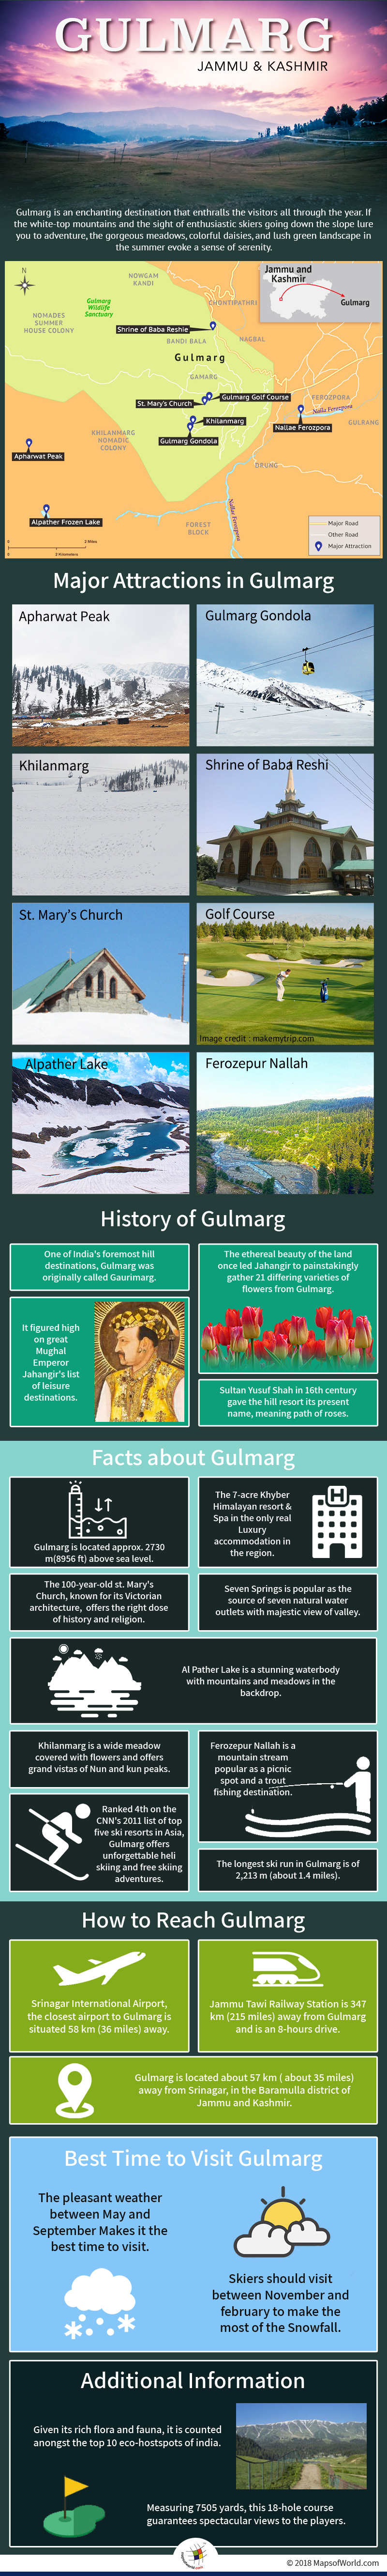 Infographic Depicting gulmarg's Attractions and Facts